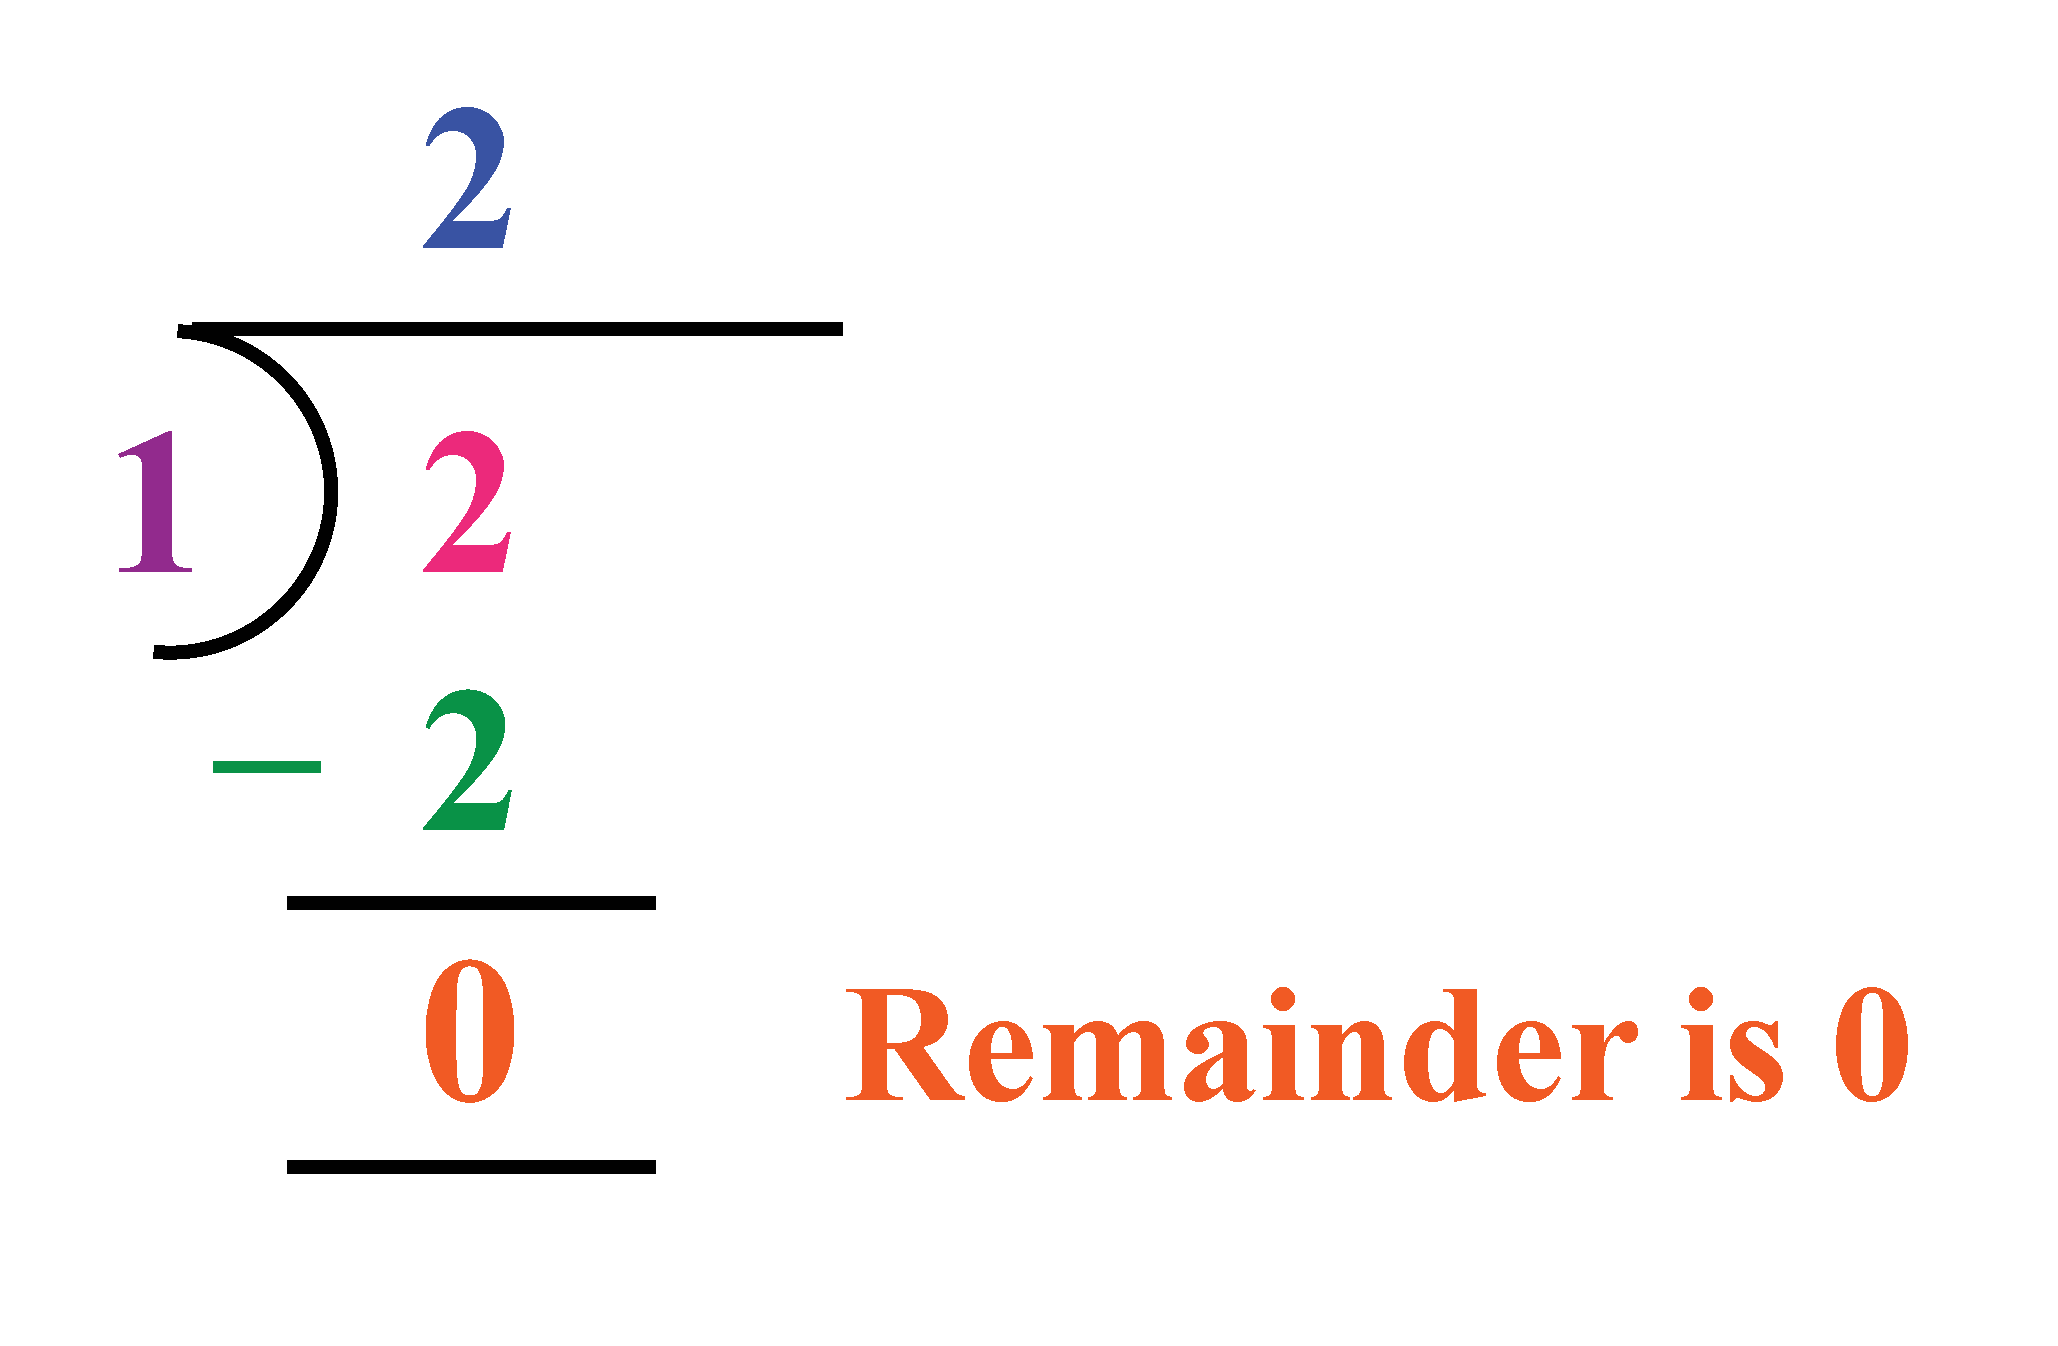 Example to show that in division when the remainder is 0, the rational number is terminating.